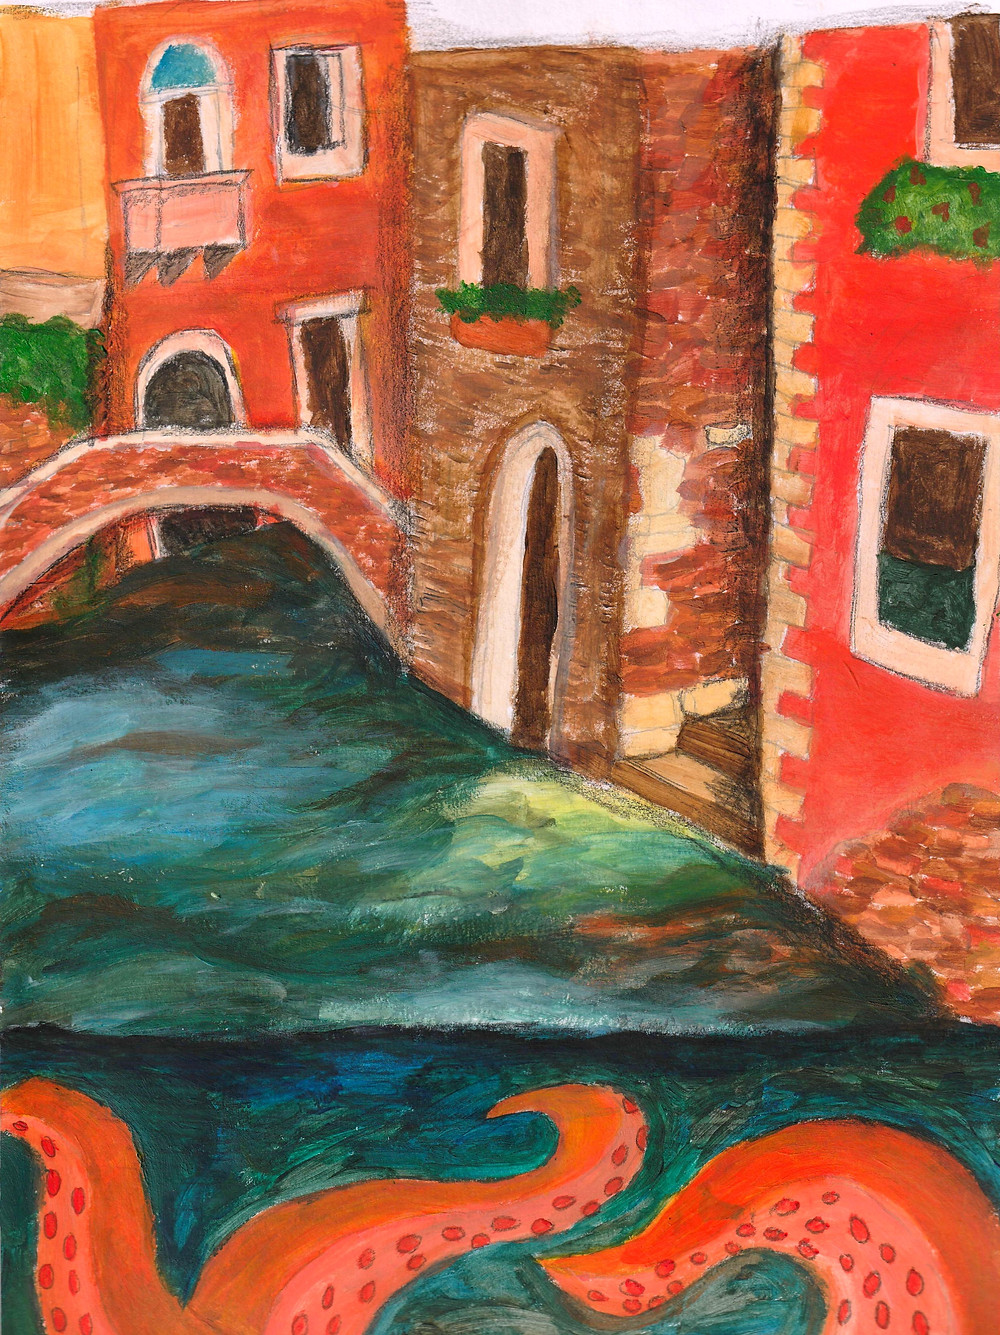 Hand painted image of a Venetian canal with the tentacles of a Kraken hiding beneath the surface of the water.